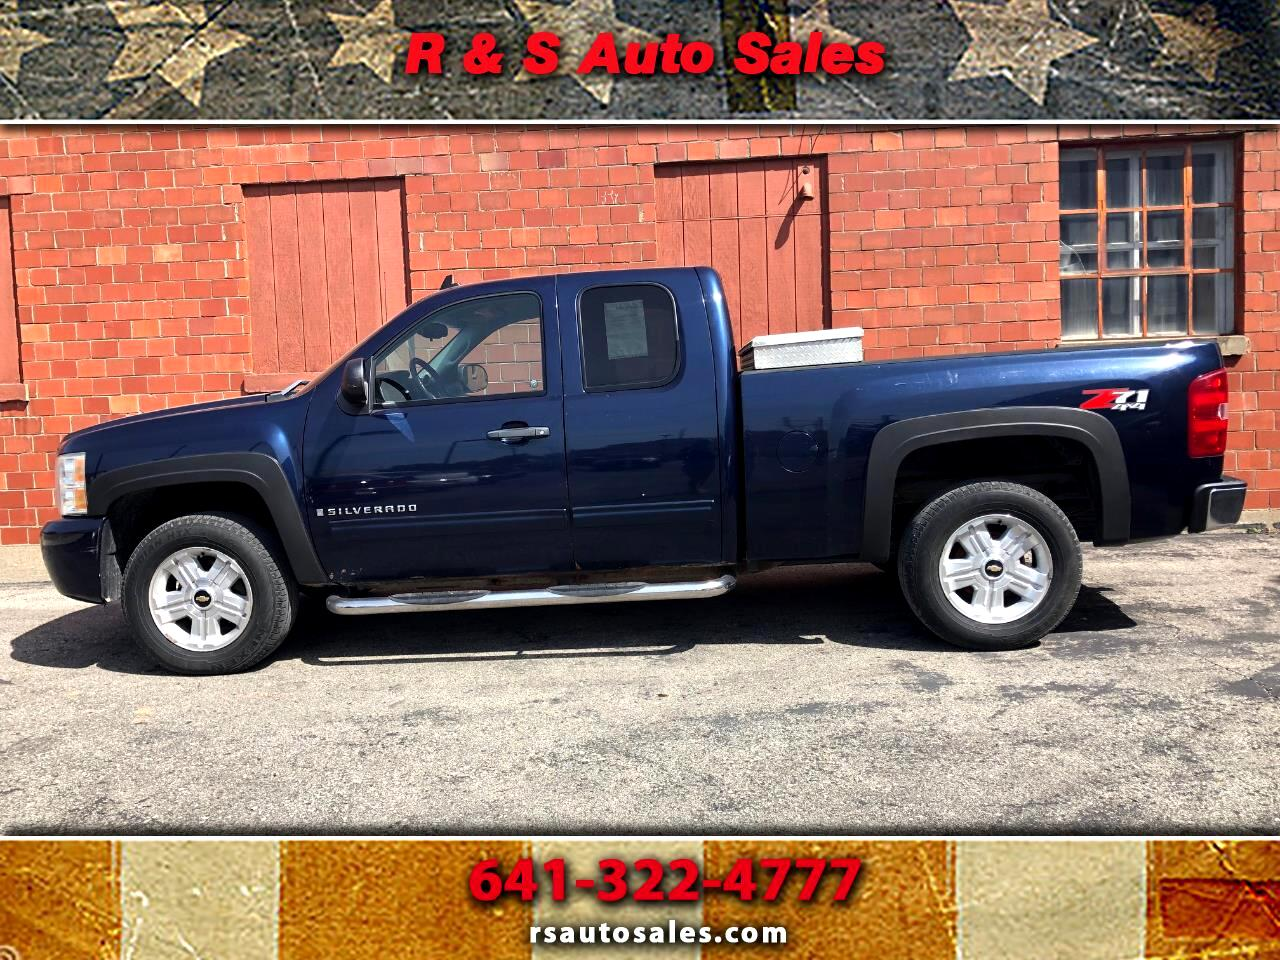 2009 Chevrolet Silverado 1500 LT Ext. Cab 4-Door Short Bed 4WD